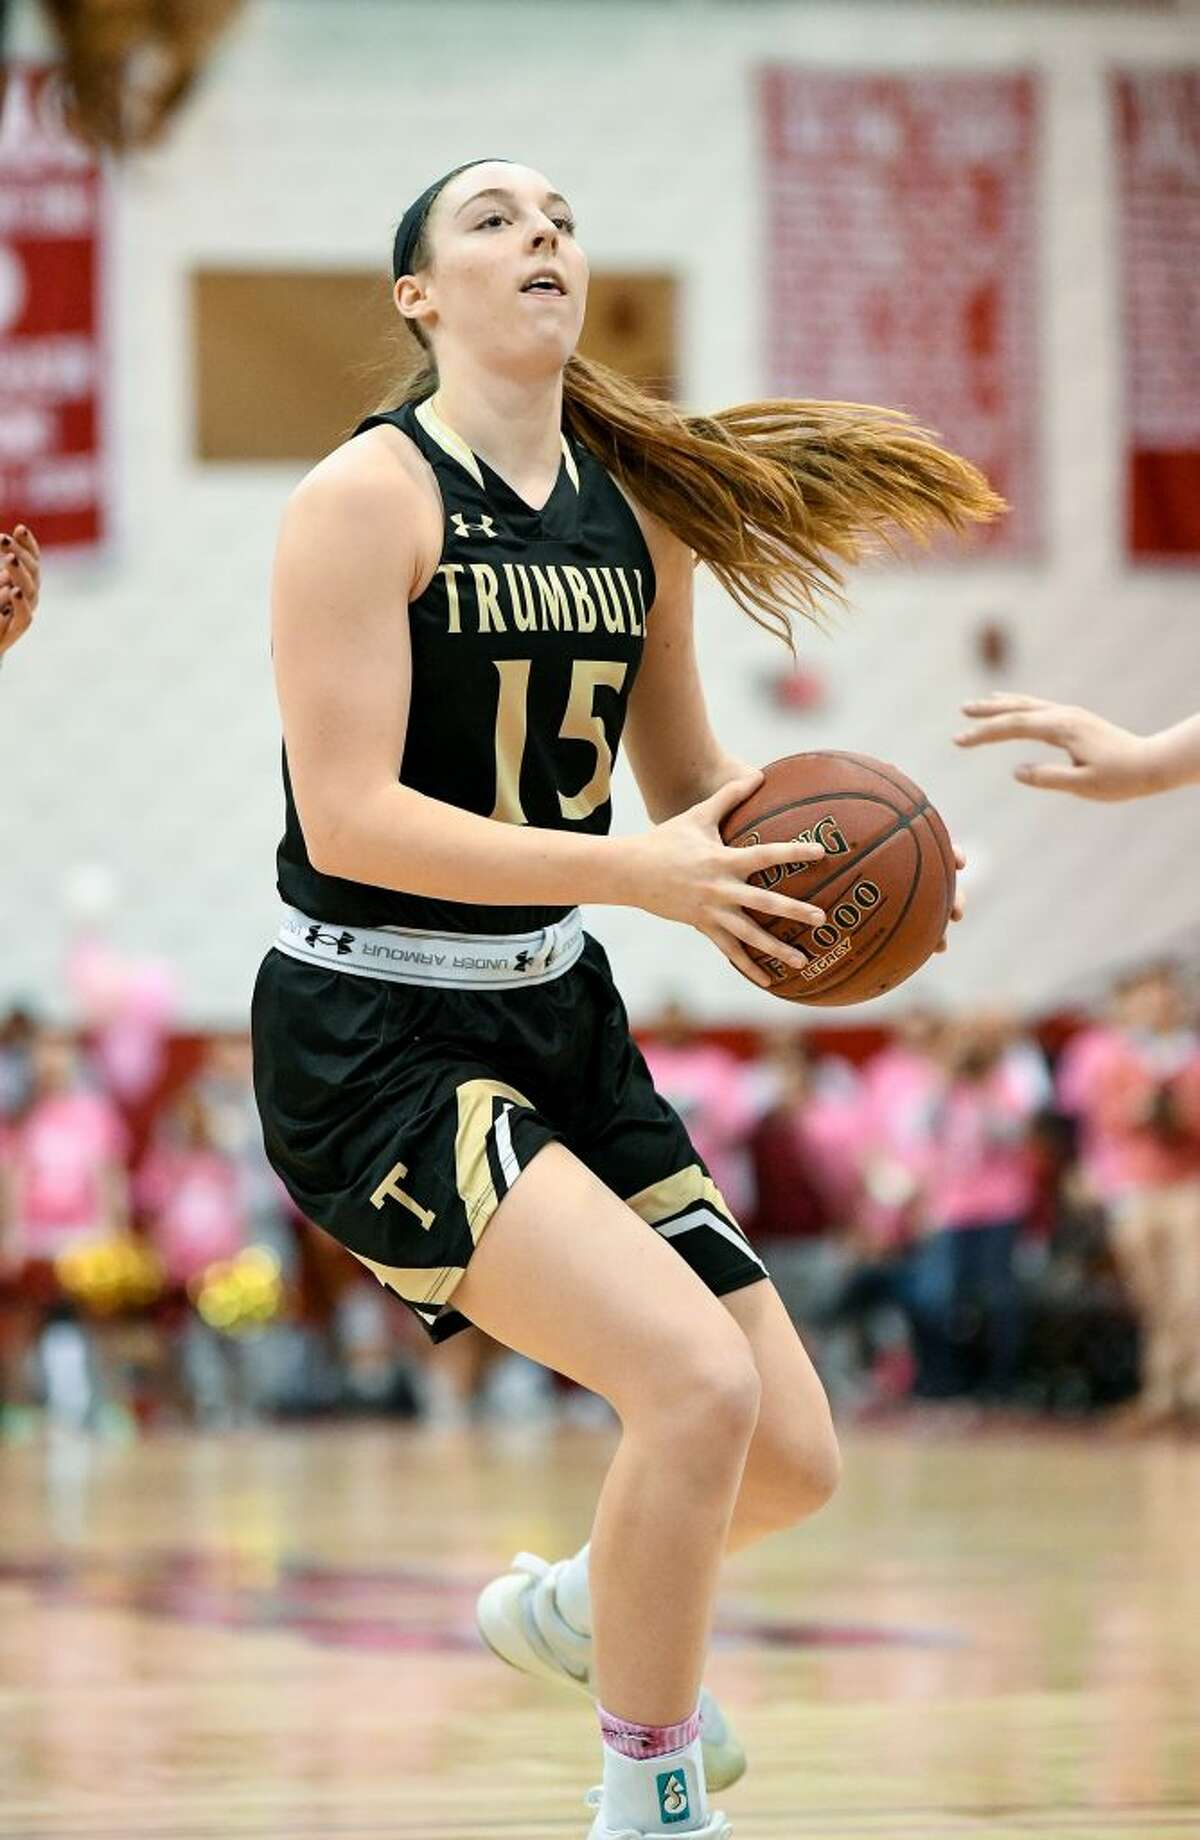 Trumbull's Krystina Schueler was fouled driving to the basket, and made a free throw to give the Eagles a 47-46 win over St. Joseph. - David G. Whitham photos